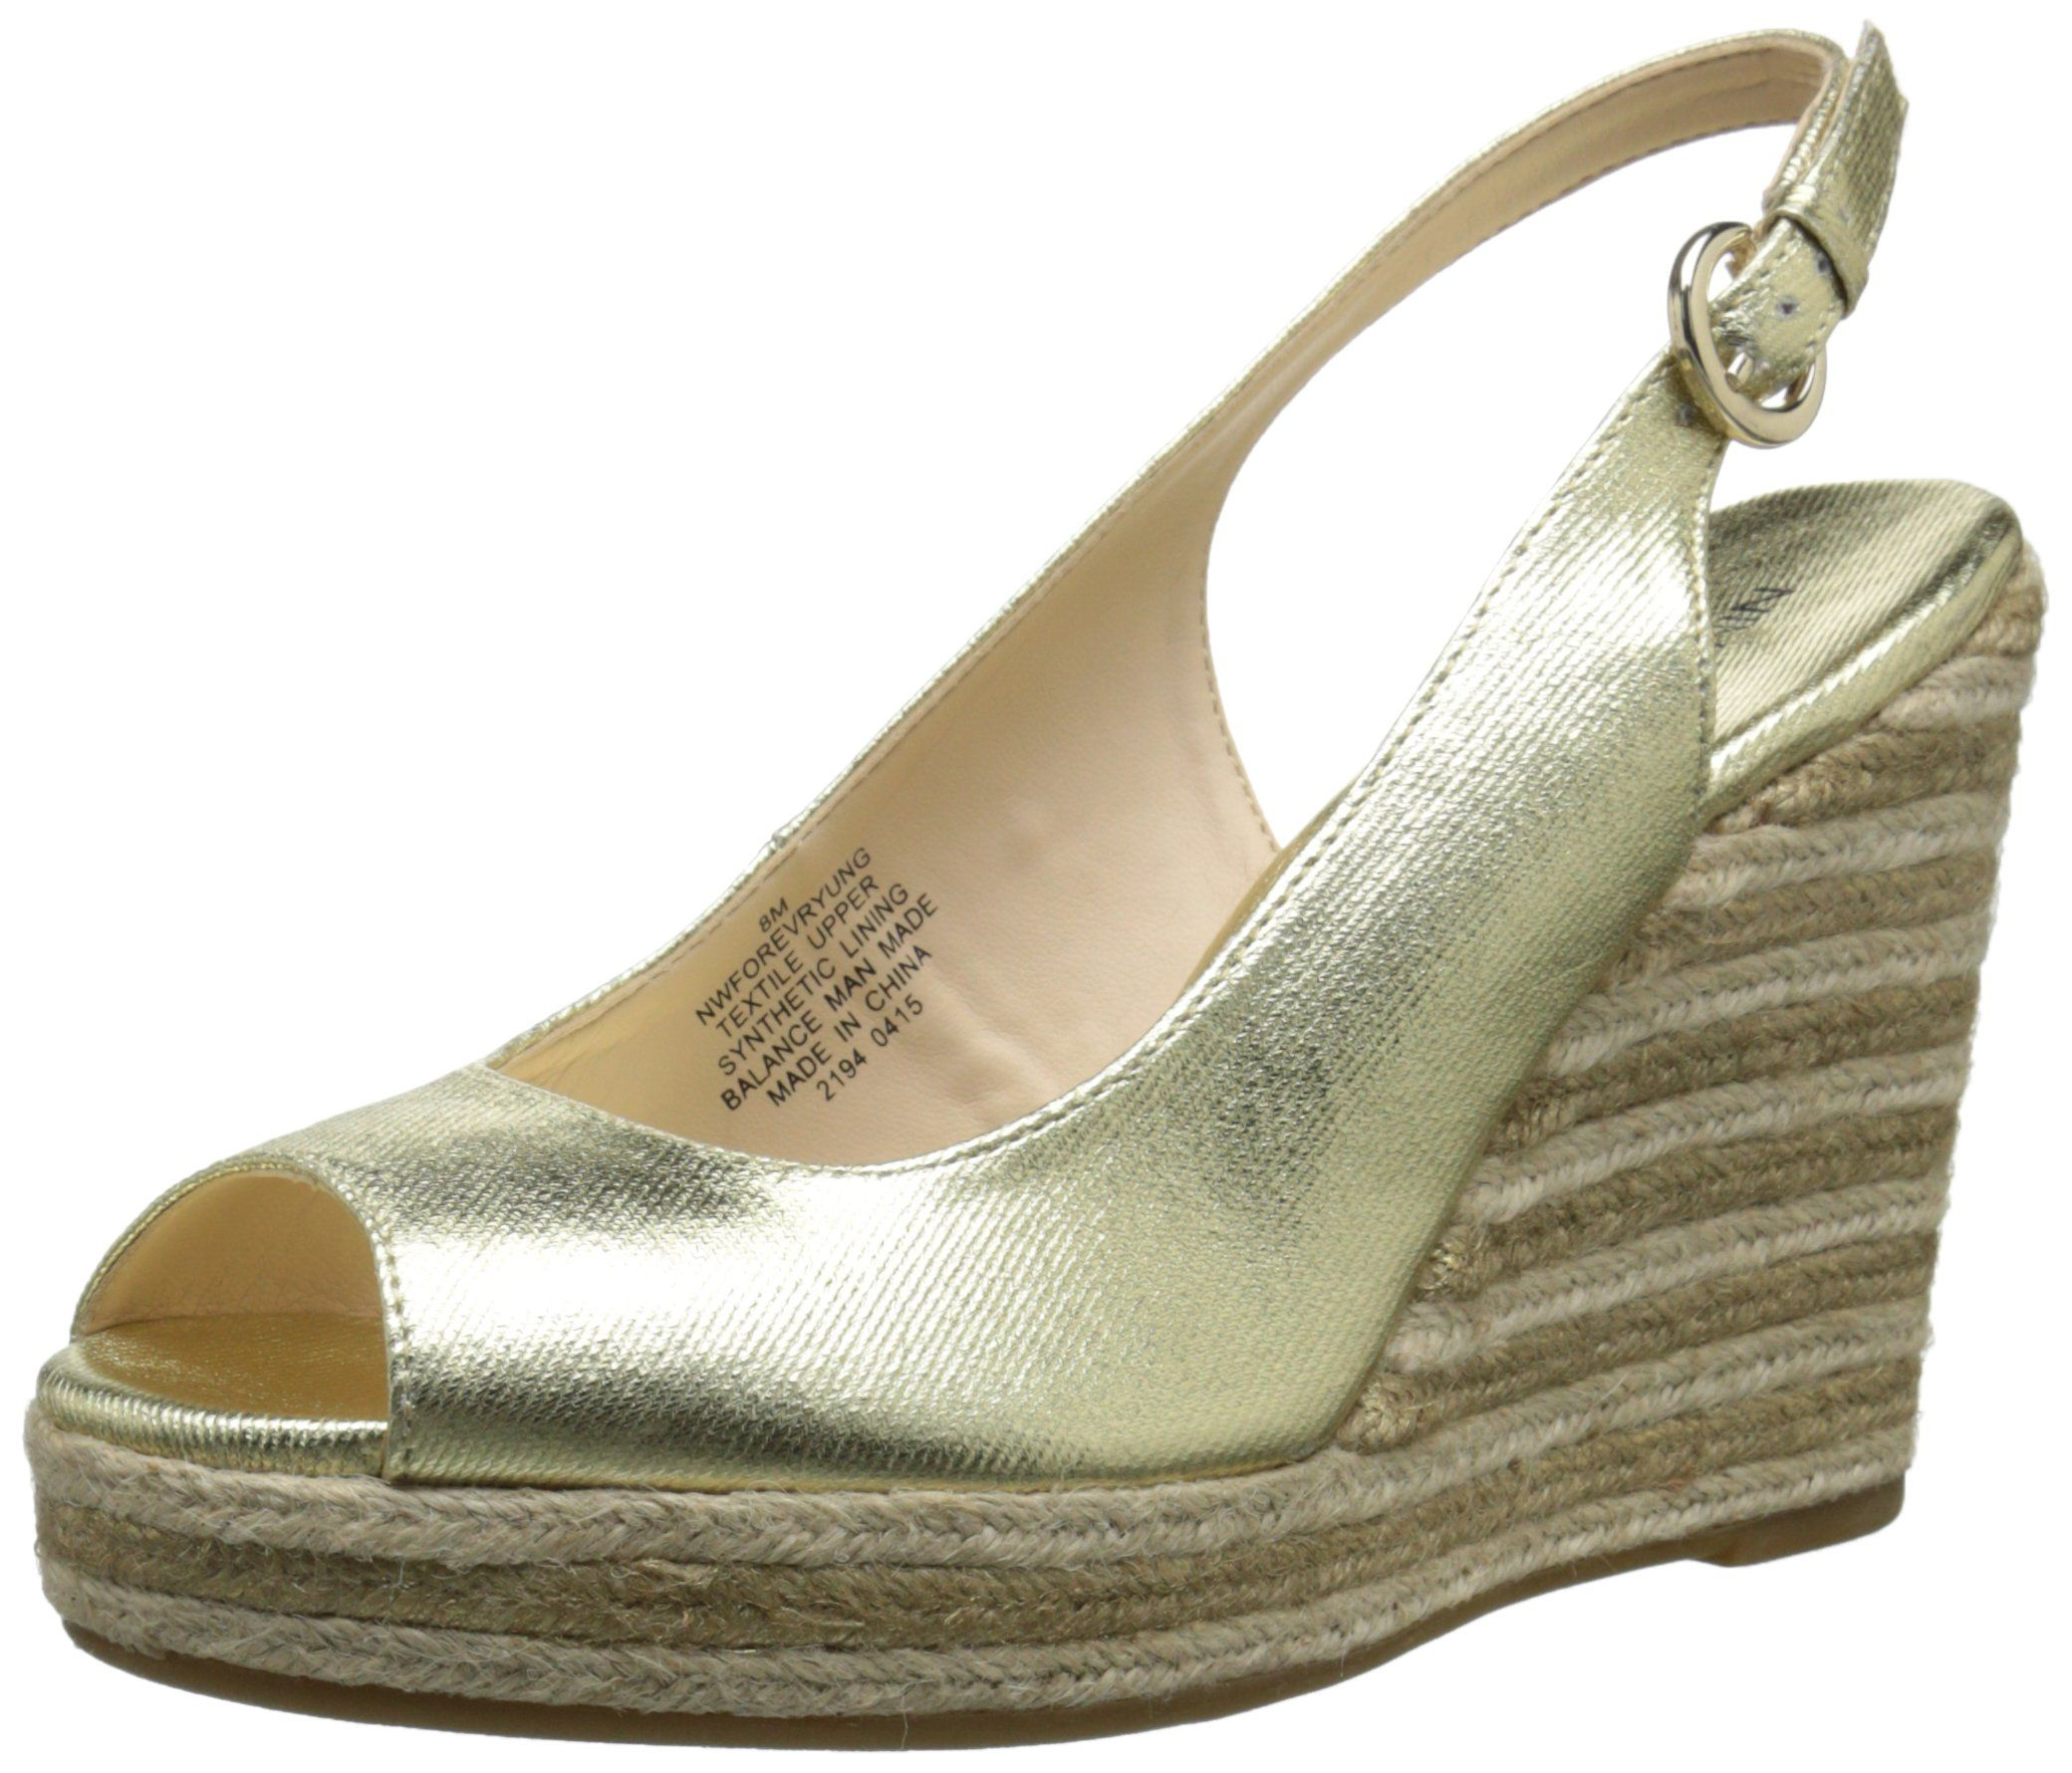 Nine West Women's Forevryung Synthetic Wedge Sandal, Light Gold/Multi, 10 M  US